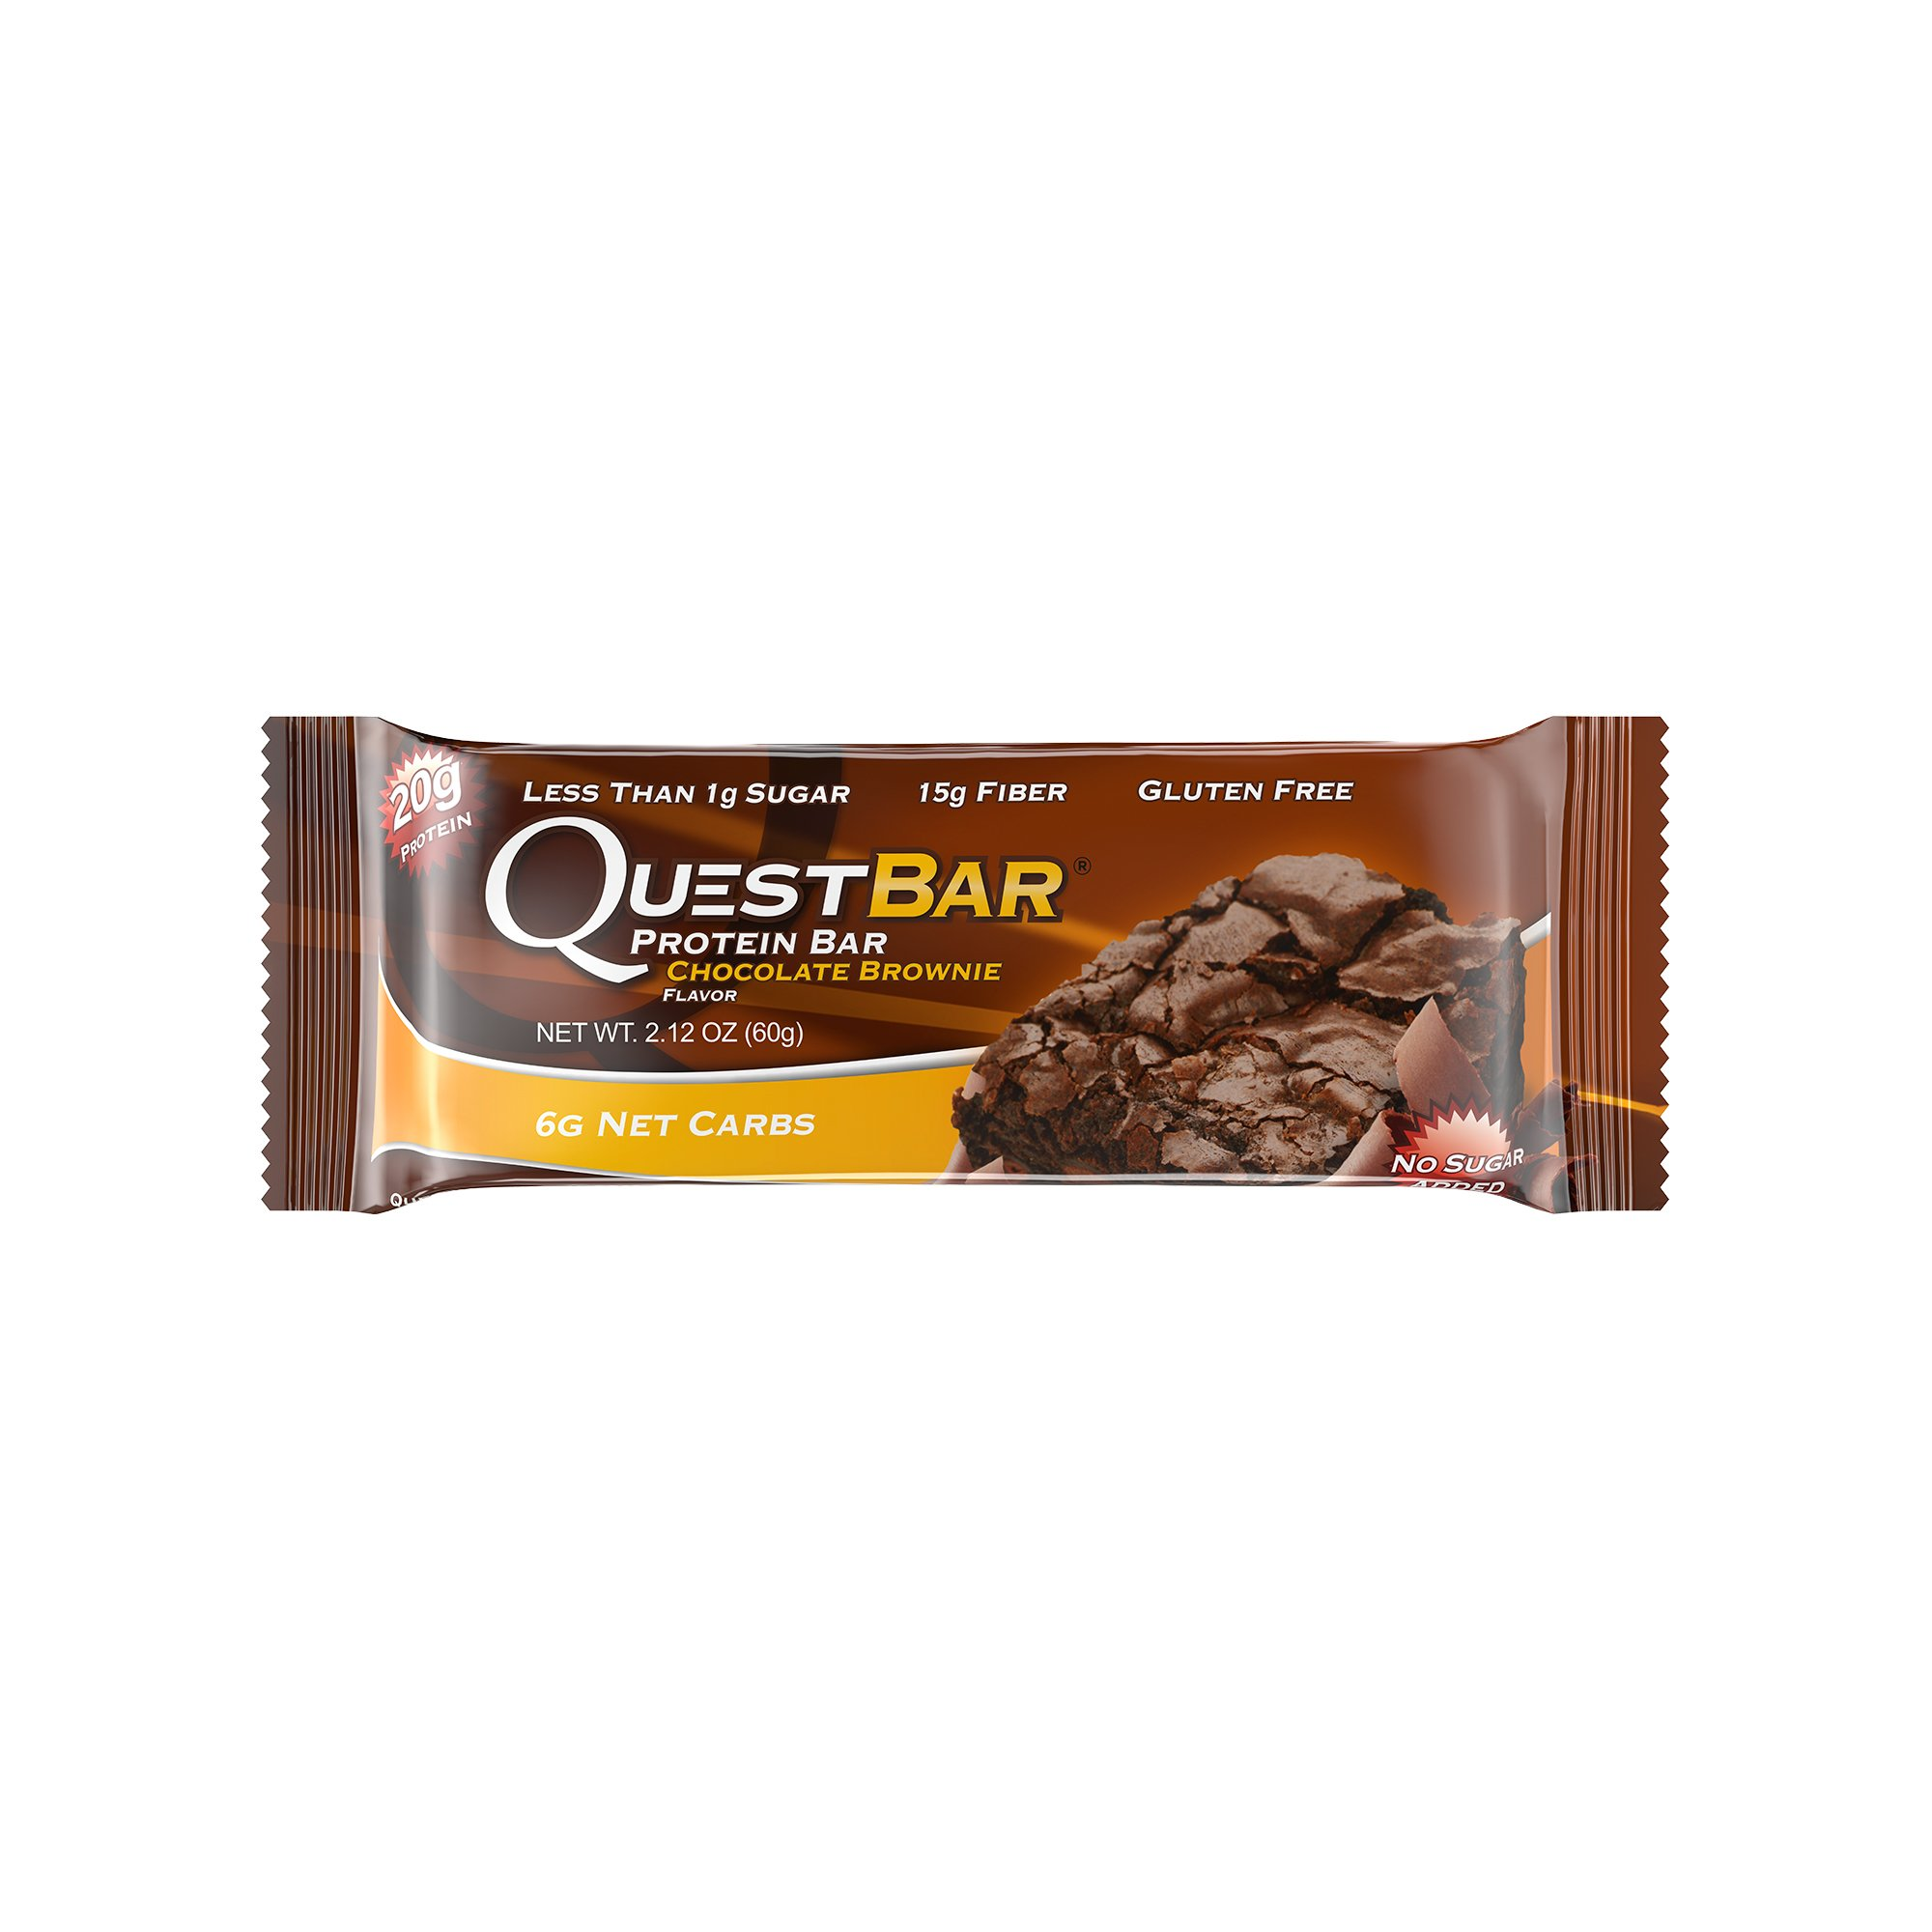 Quest Nutrition Protein Bar, Chocolate Brownie, 20g Protein, 5g Net Carbs, 180 Cals, High Protein Bars, Low Carb Bars,2.1 oz Bar, 12 Count, Packaging May Vary